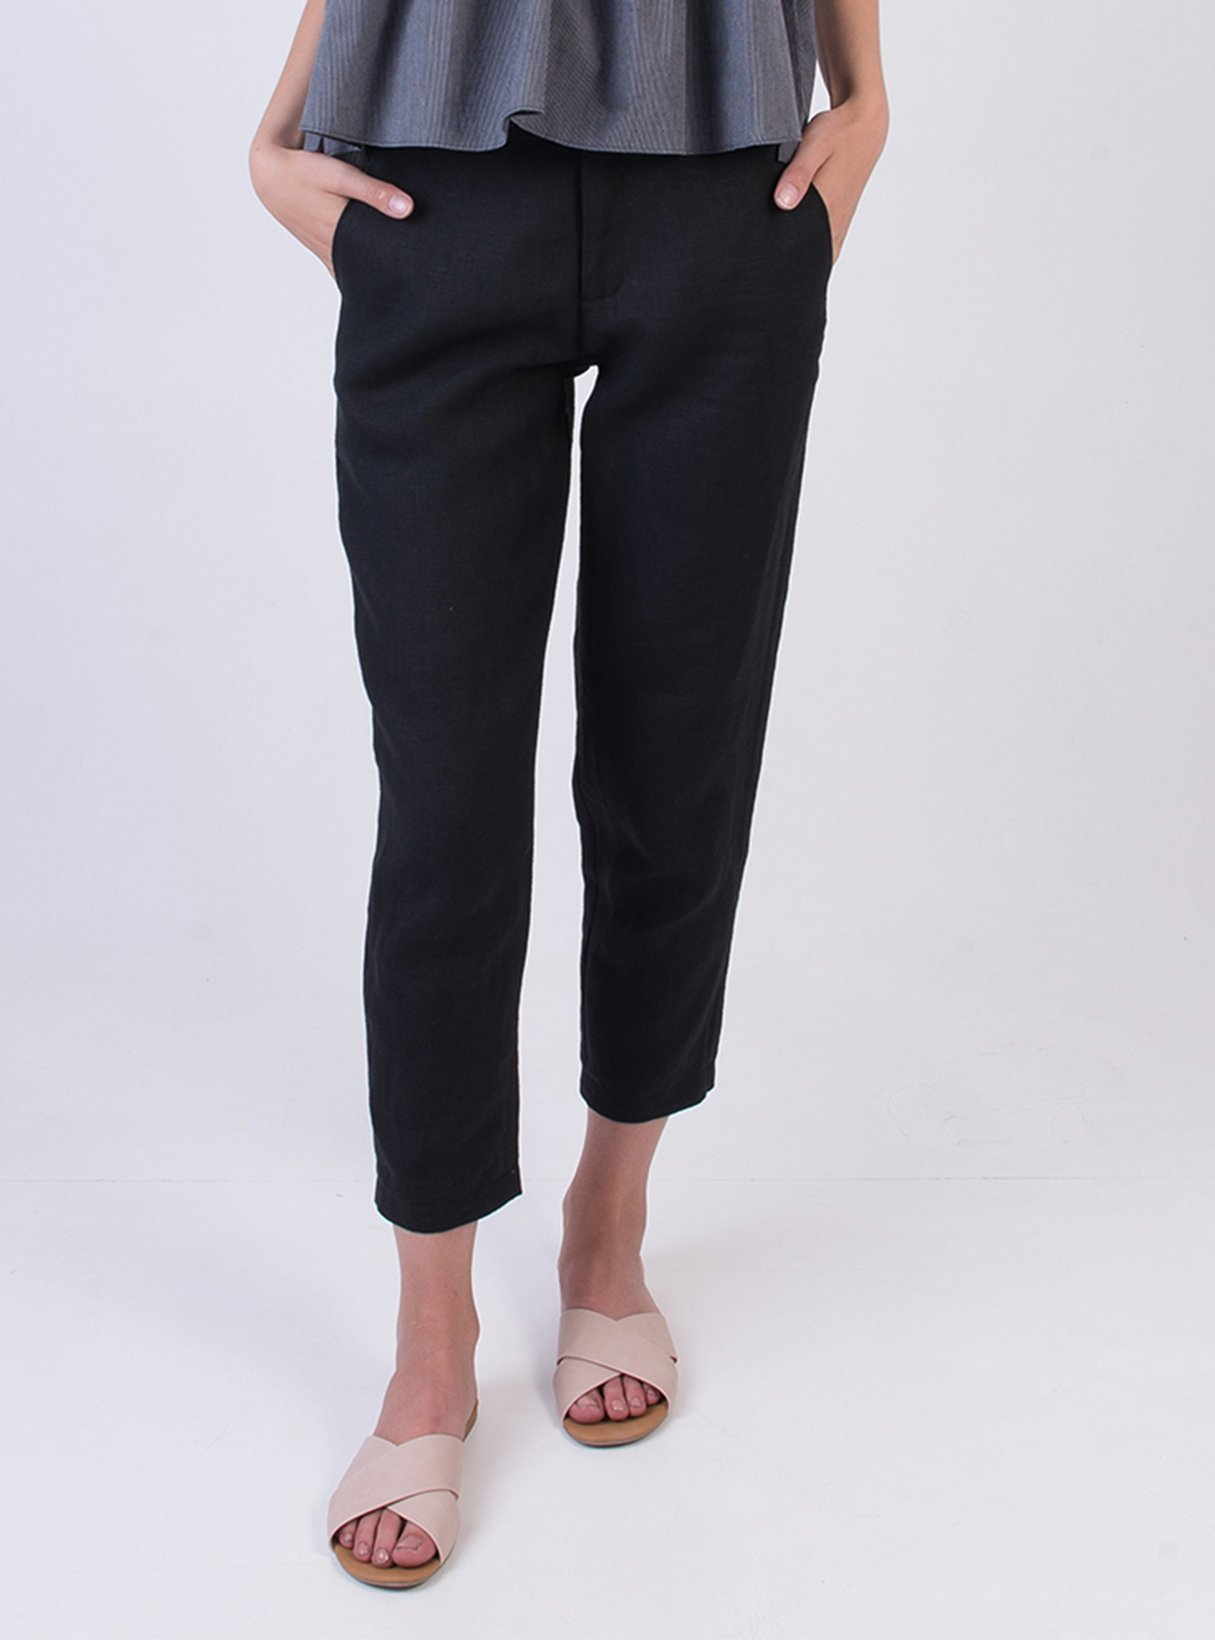 Trousers 7/8 lenght - black